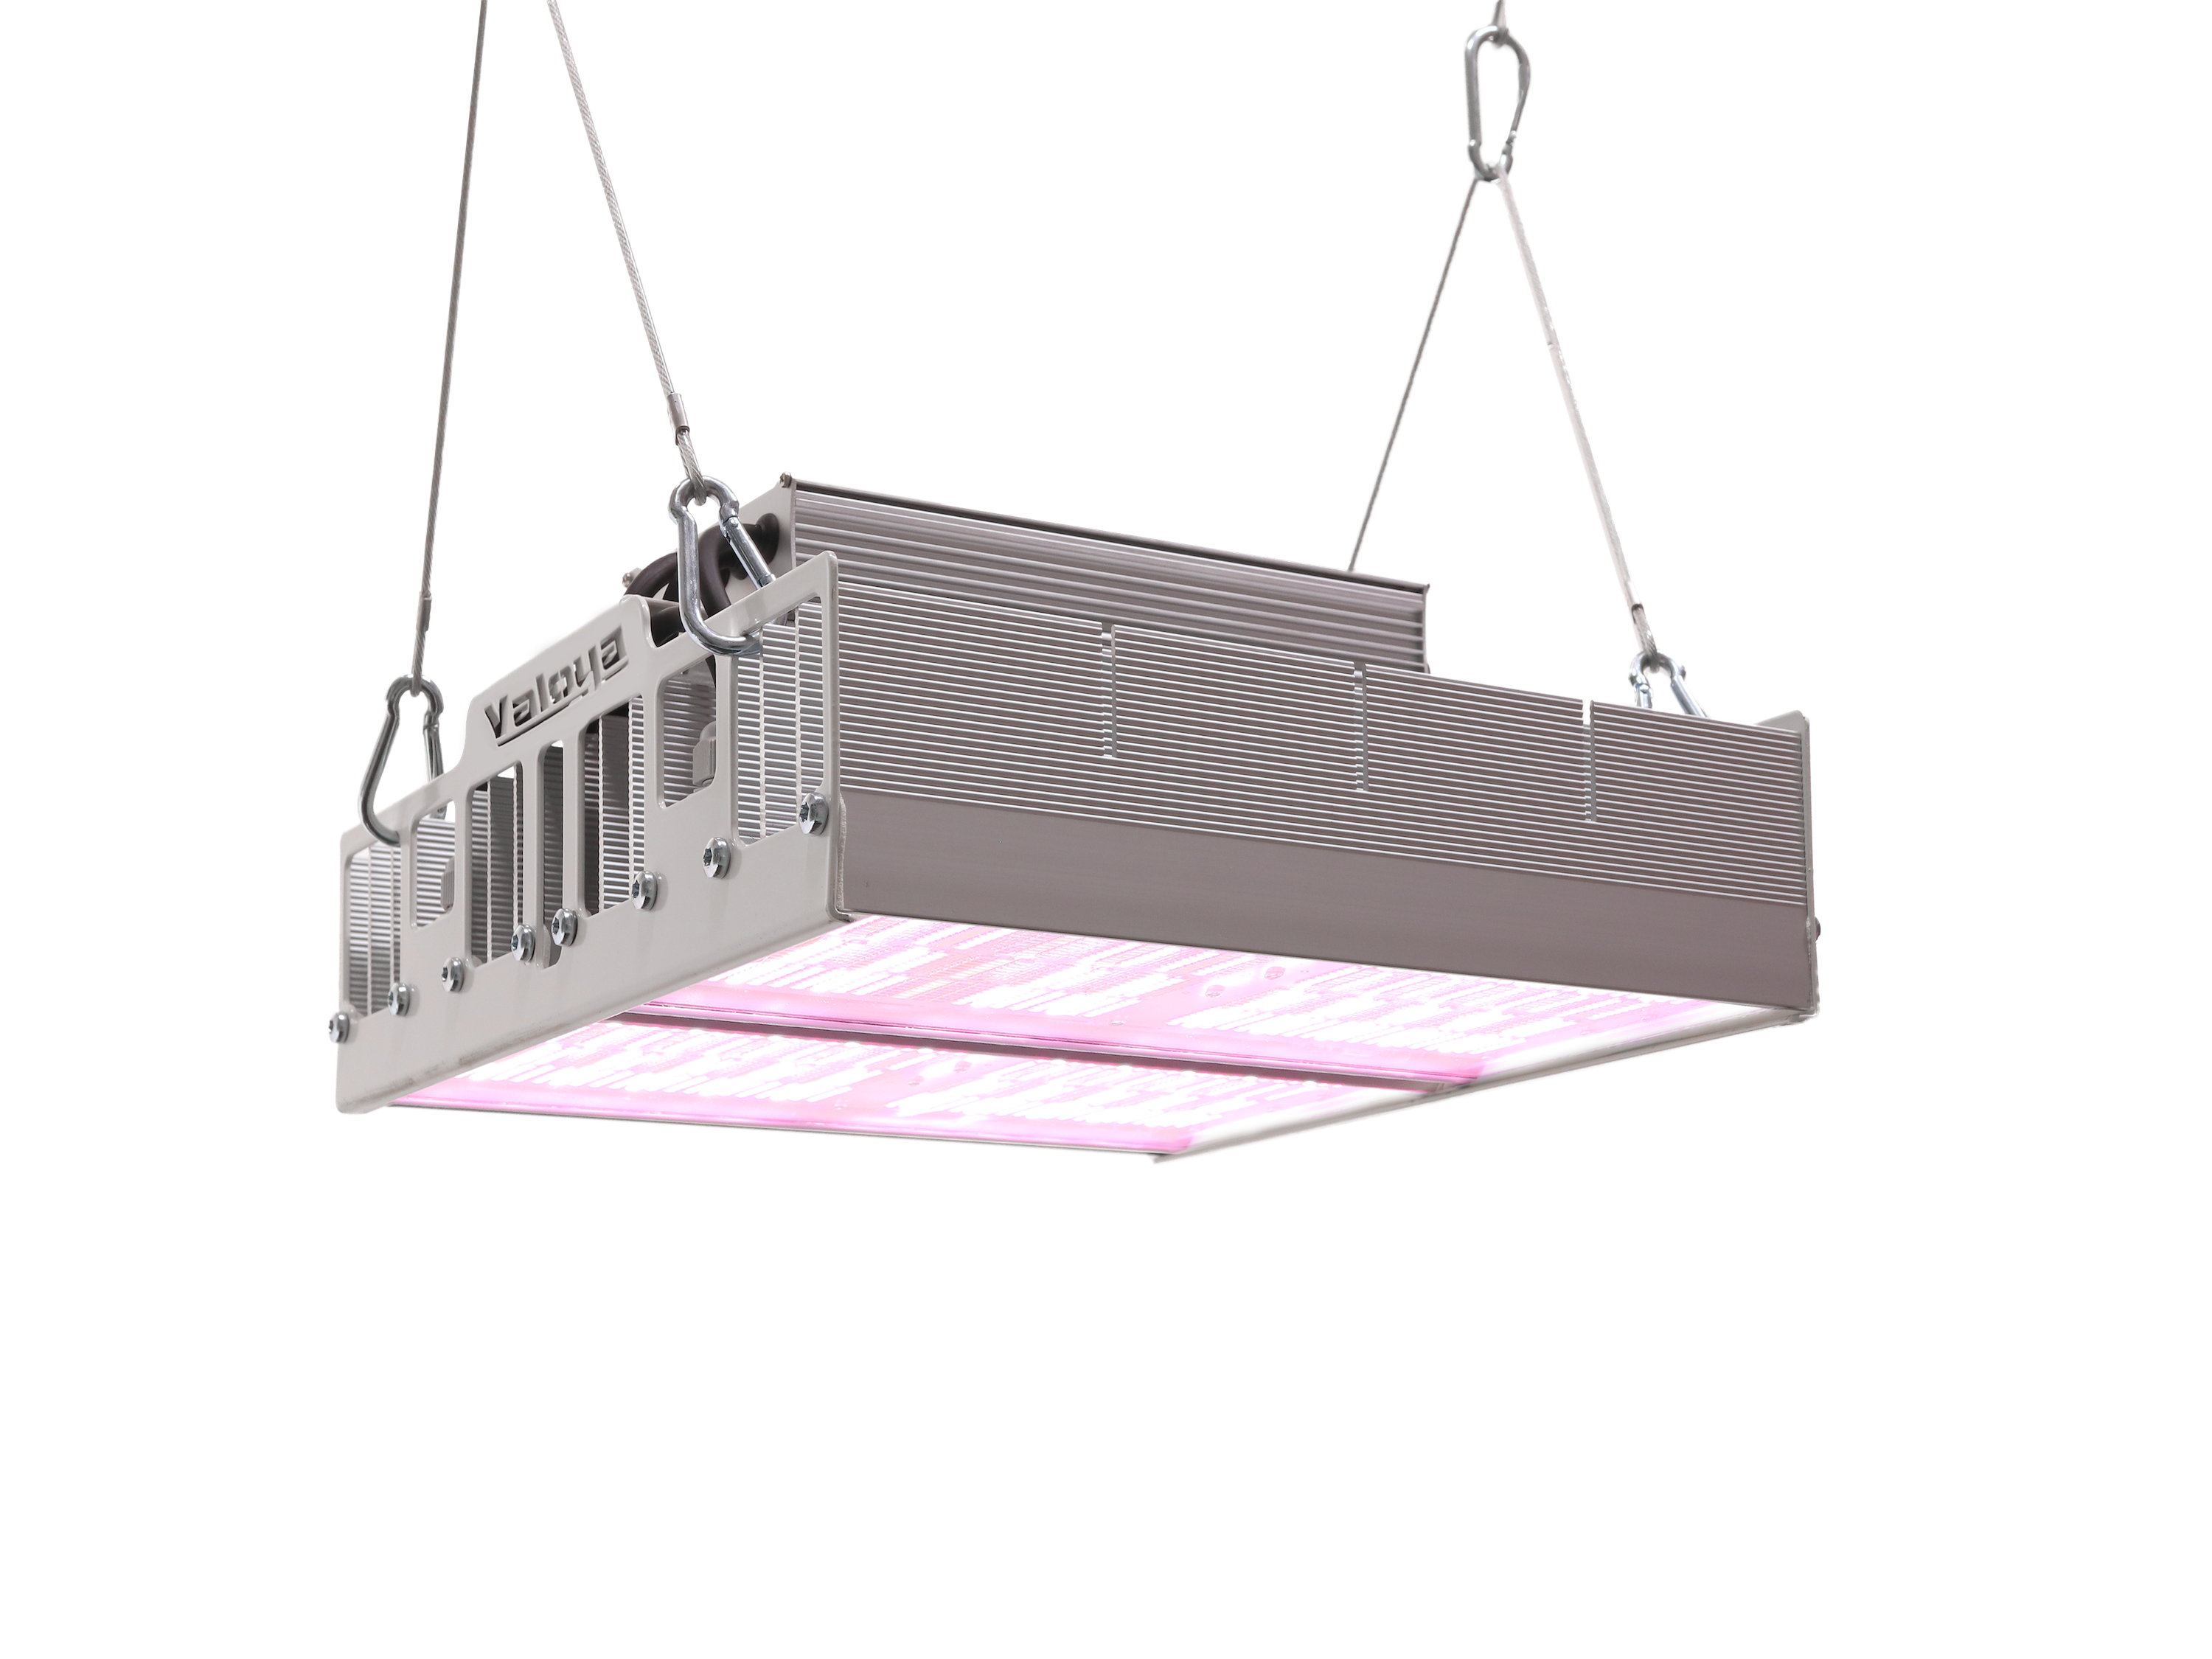 Valoya Launches a High Intensity LED Grow Light for Greenhouses